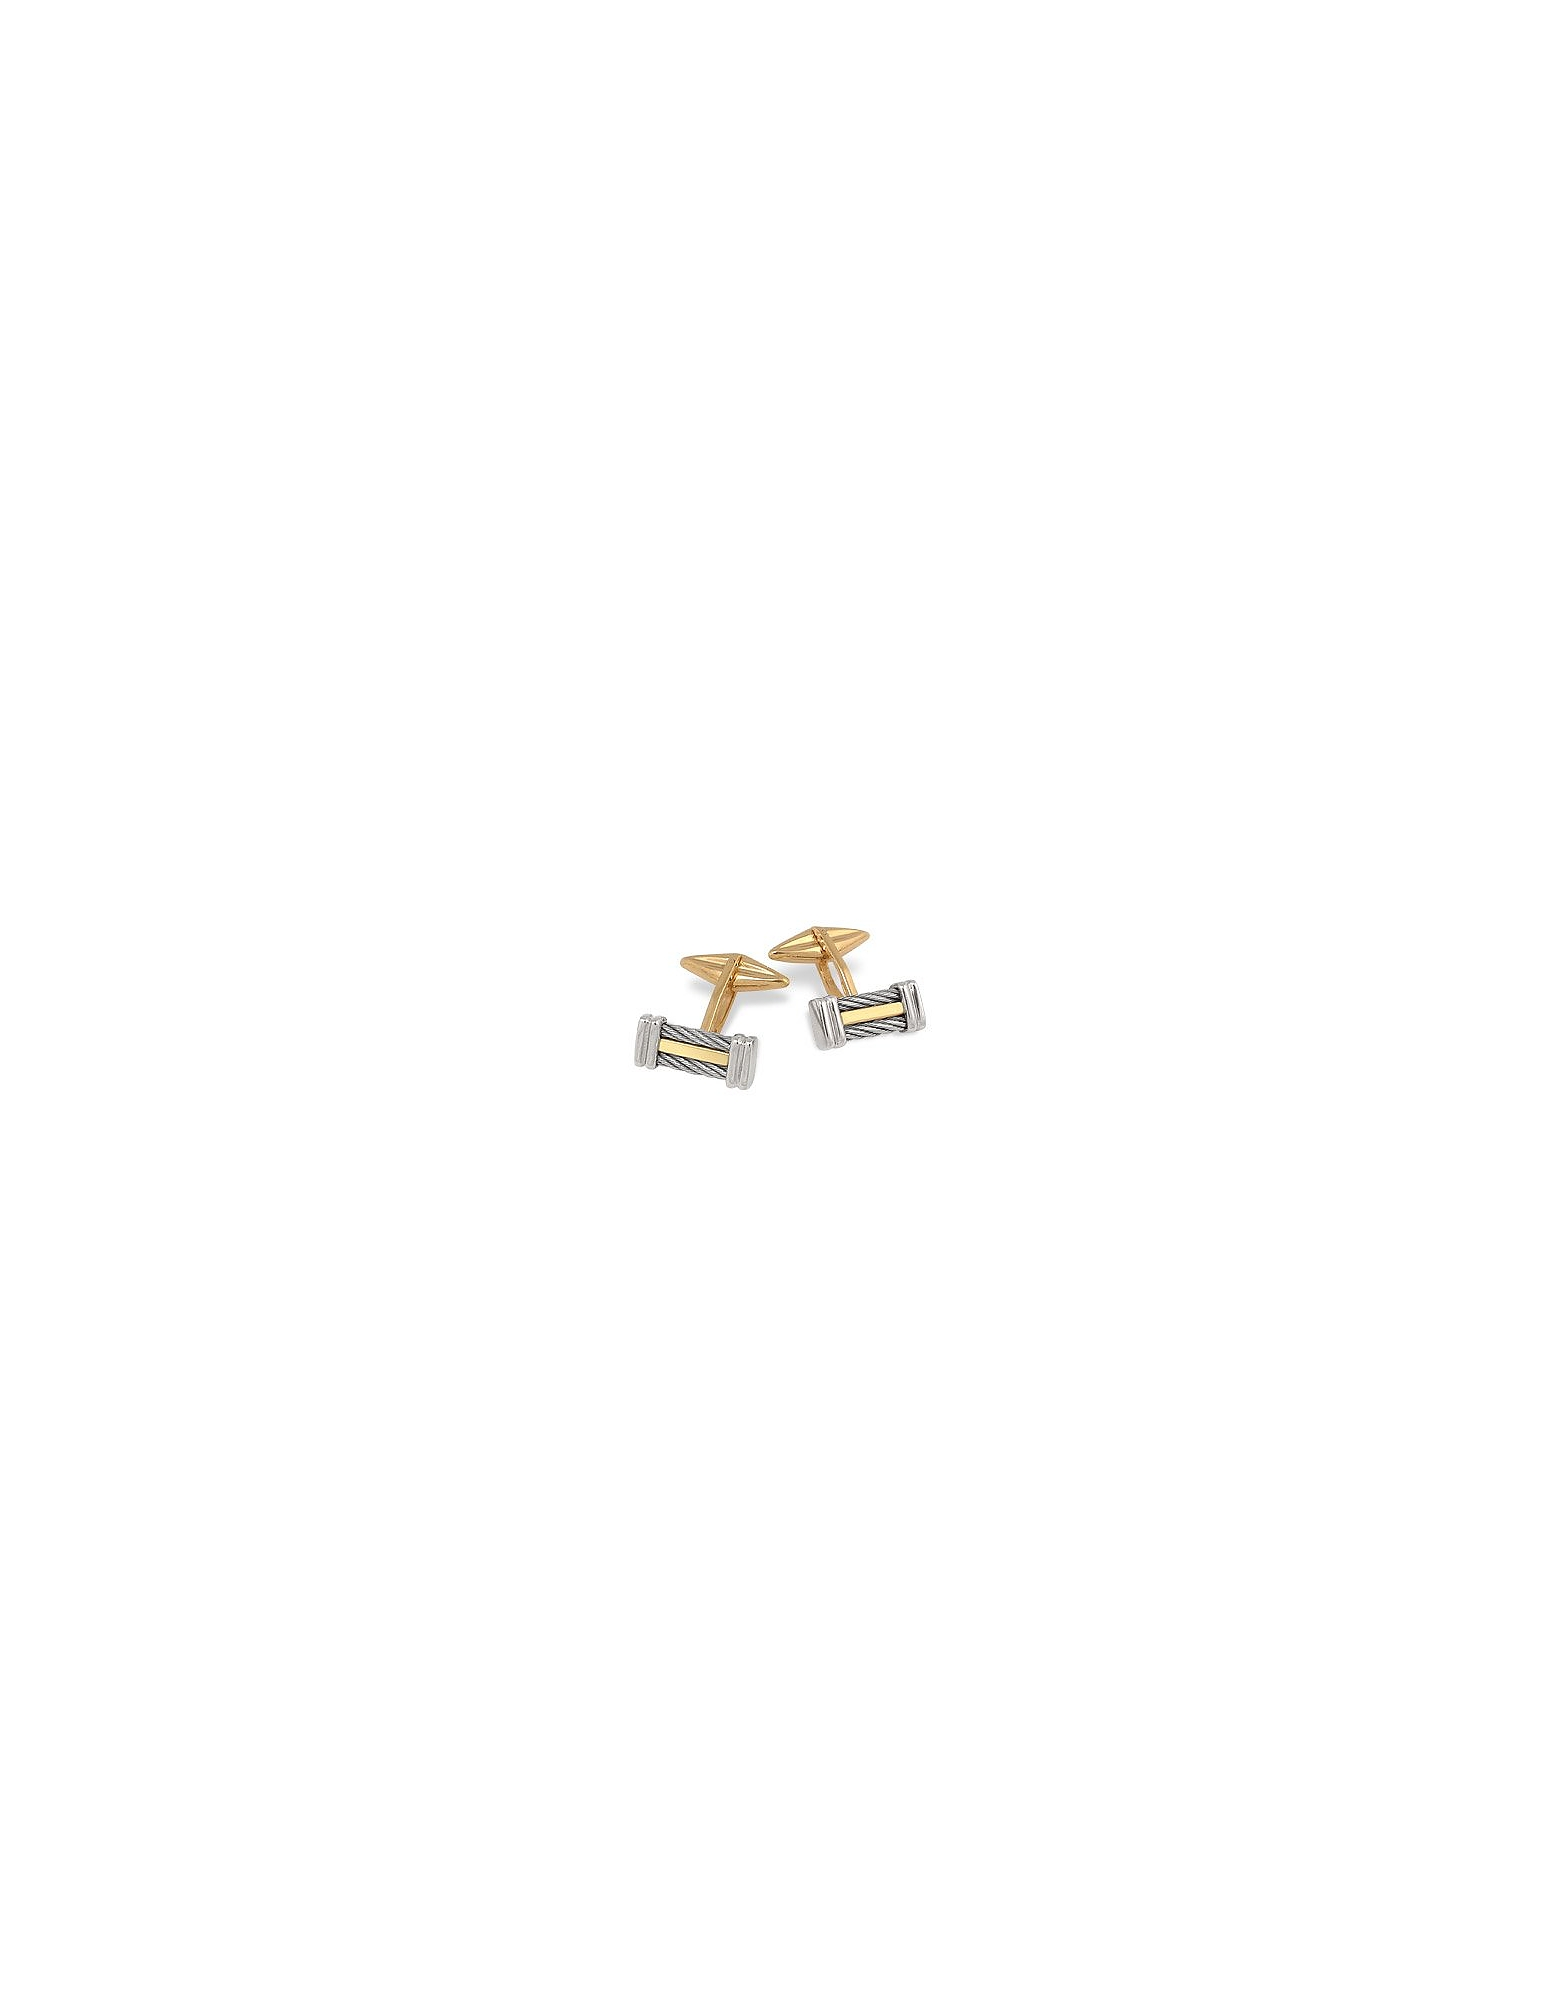 Forzieri Designer Cufflinks, Di Fulco Line Gold and Stainless Steel Cufflinks